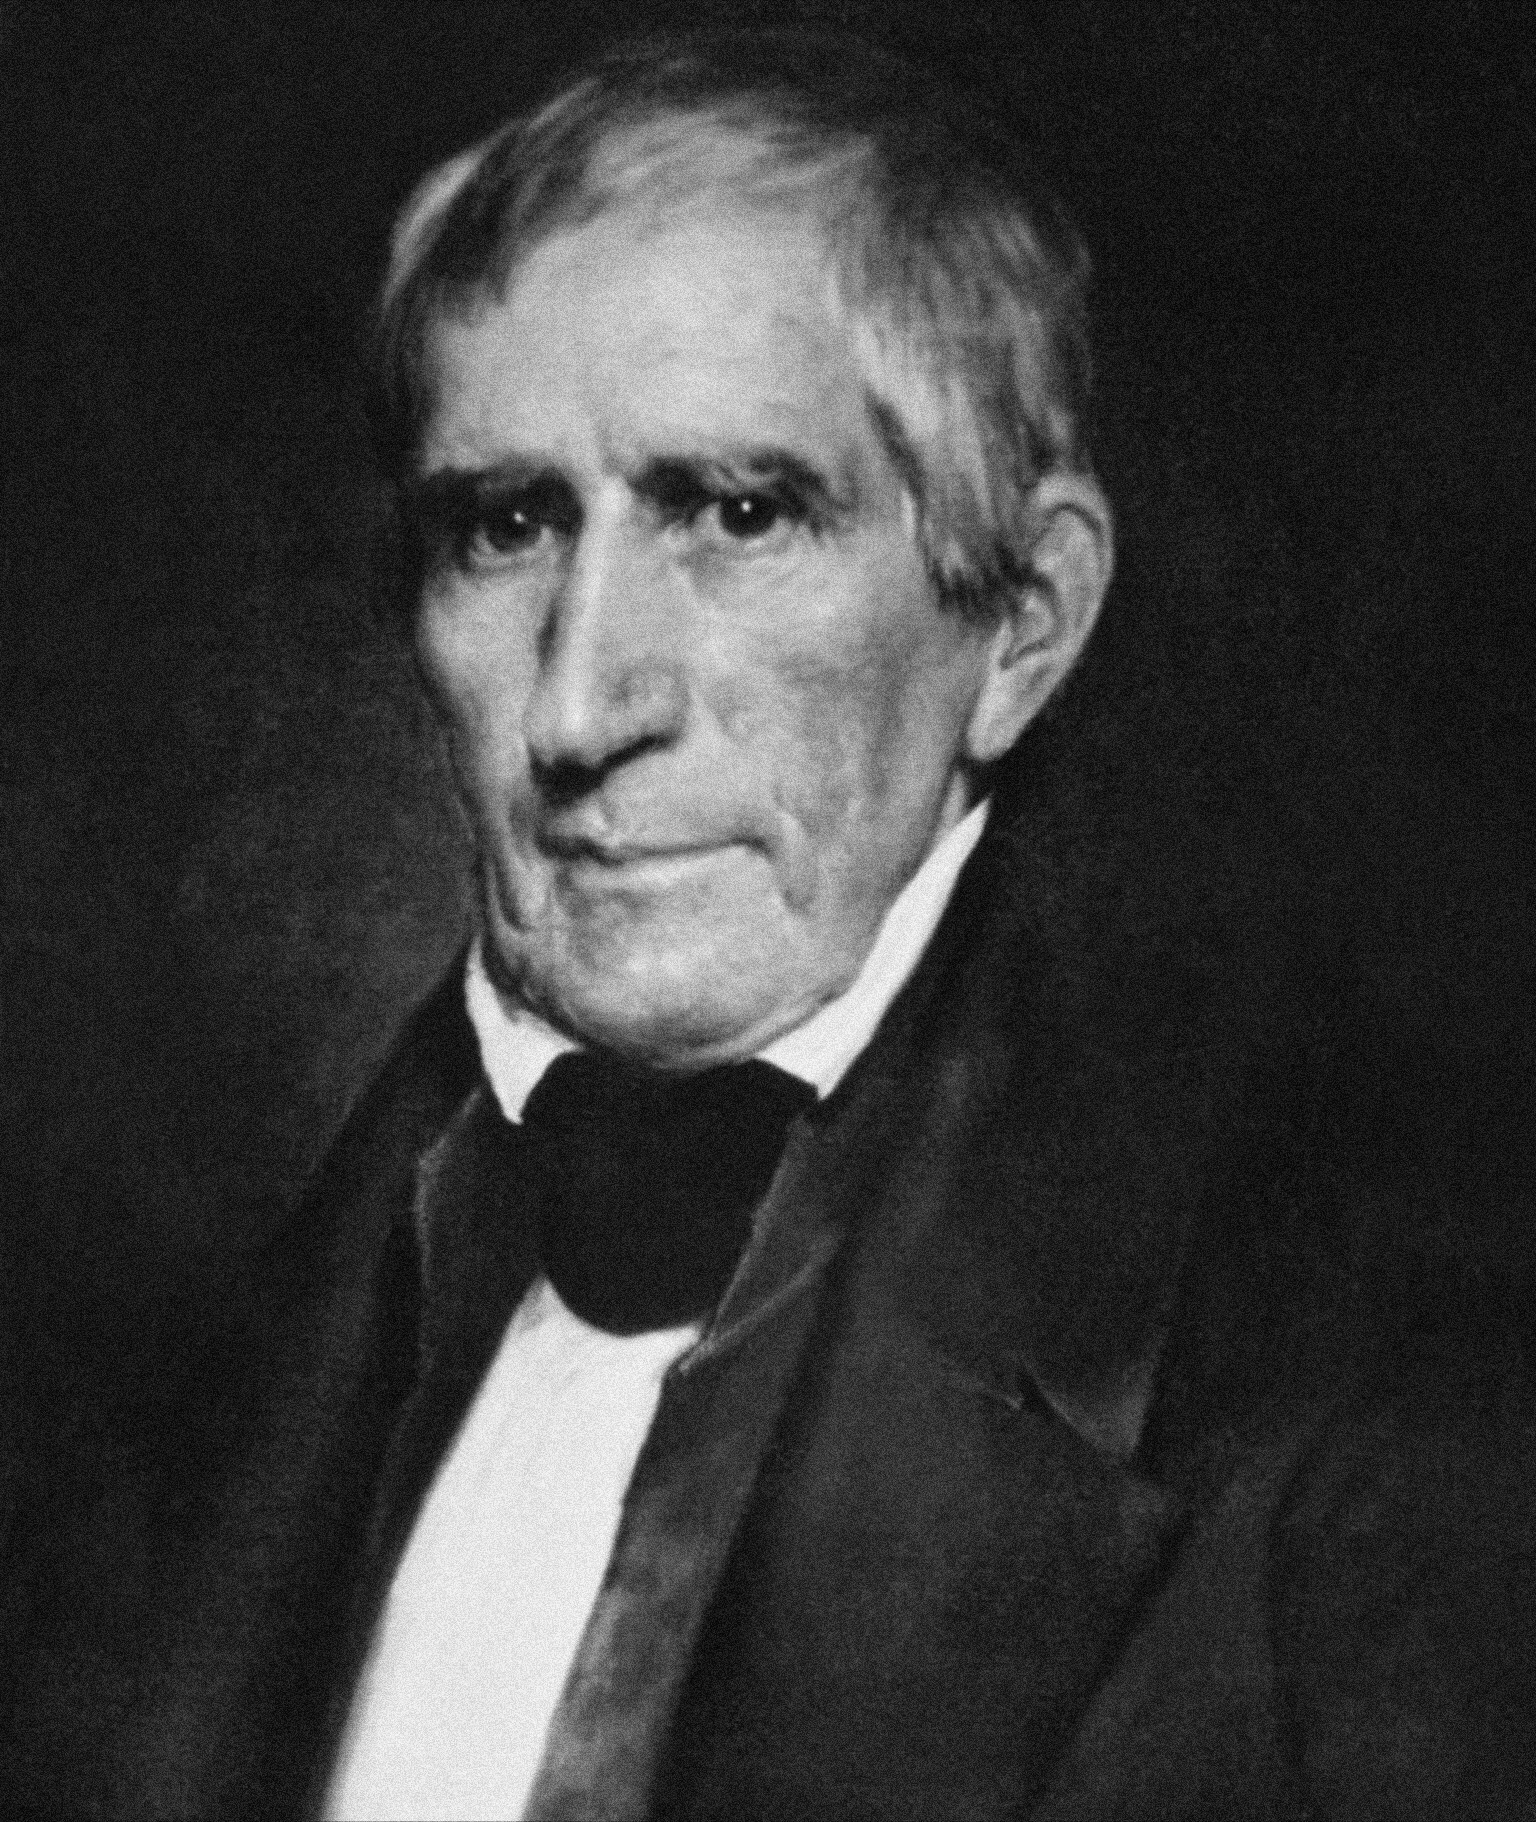 Daguerrotype of William Henry Harrison, 1841